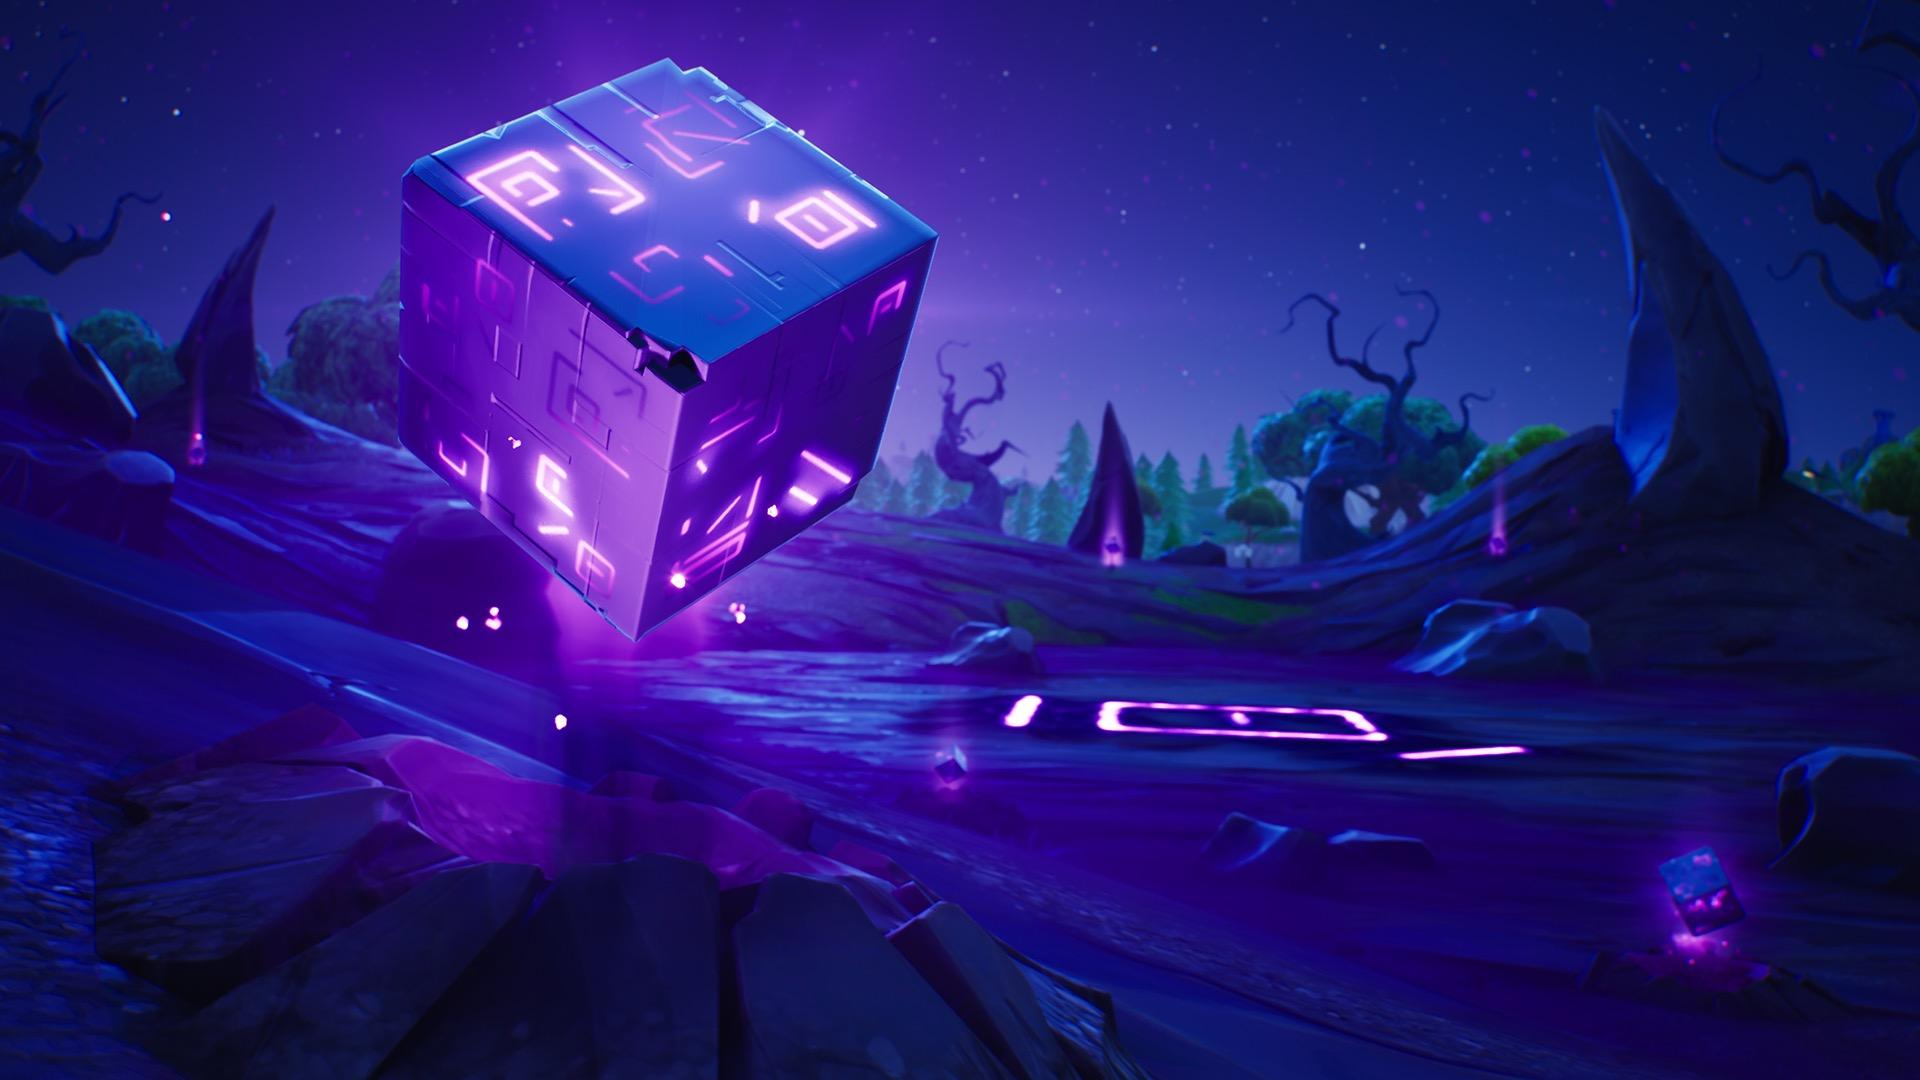 Fortnite Season 6 Battle Pass Reward: Calamity (Legendary Skin) features Unlockable Styles